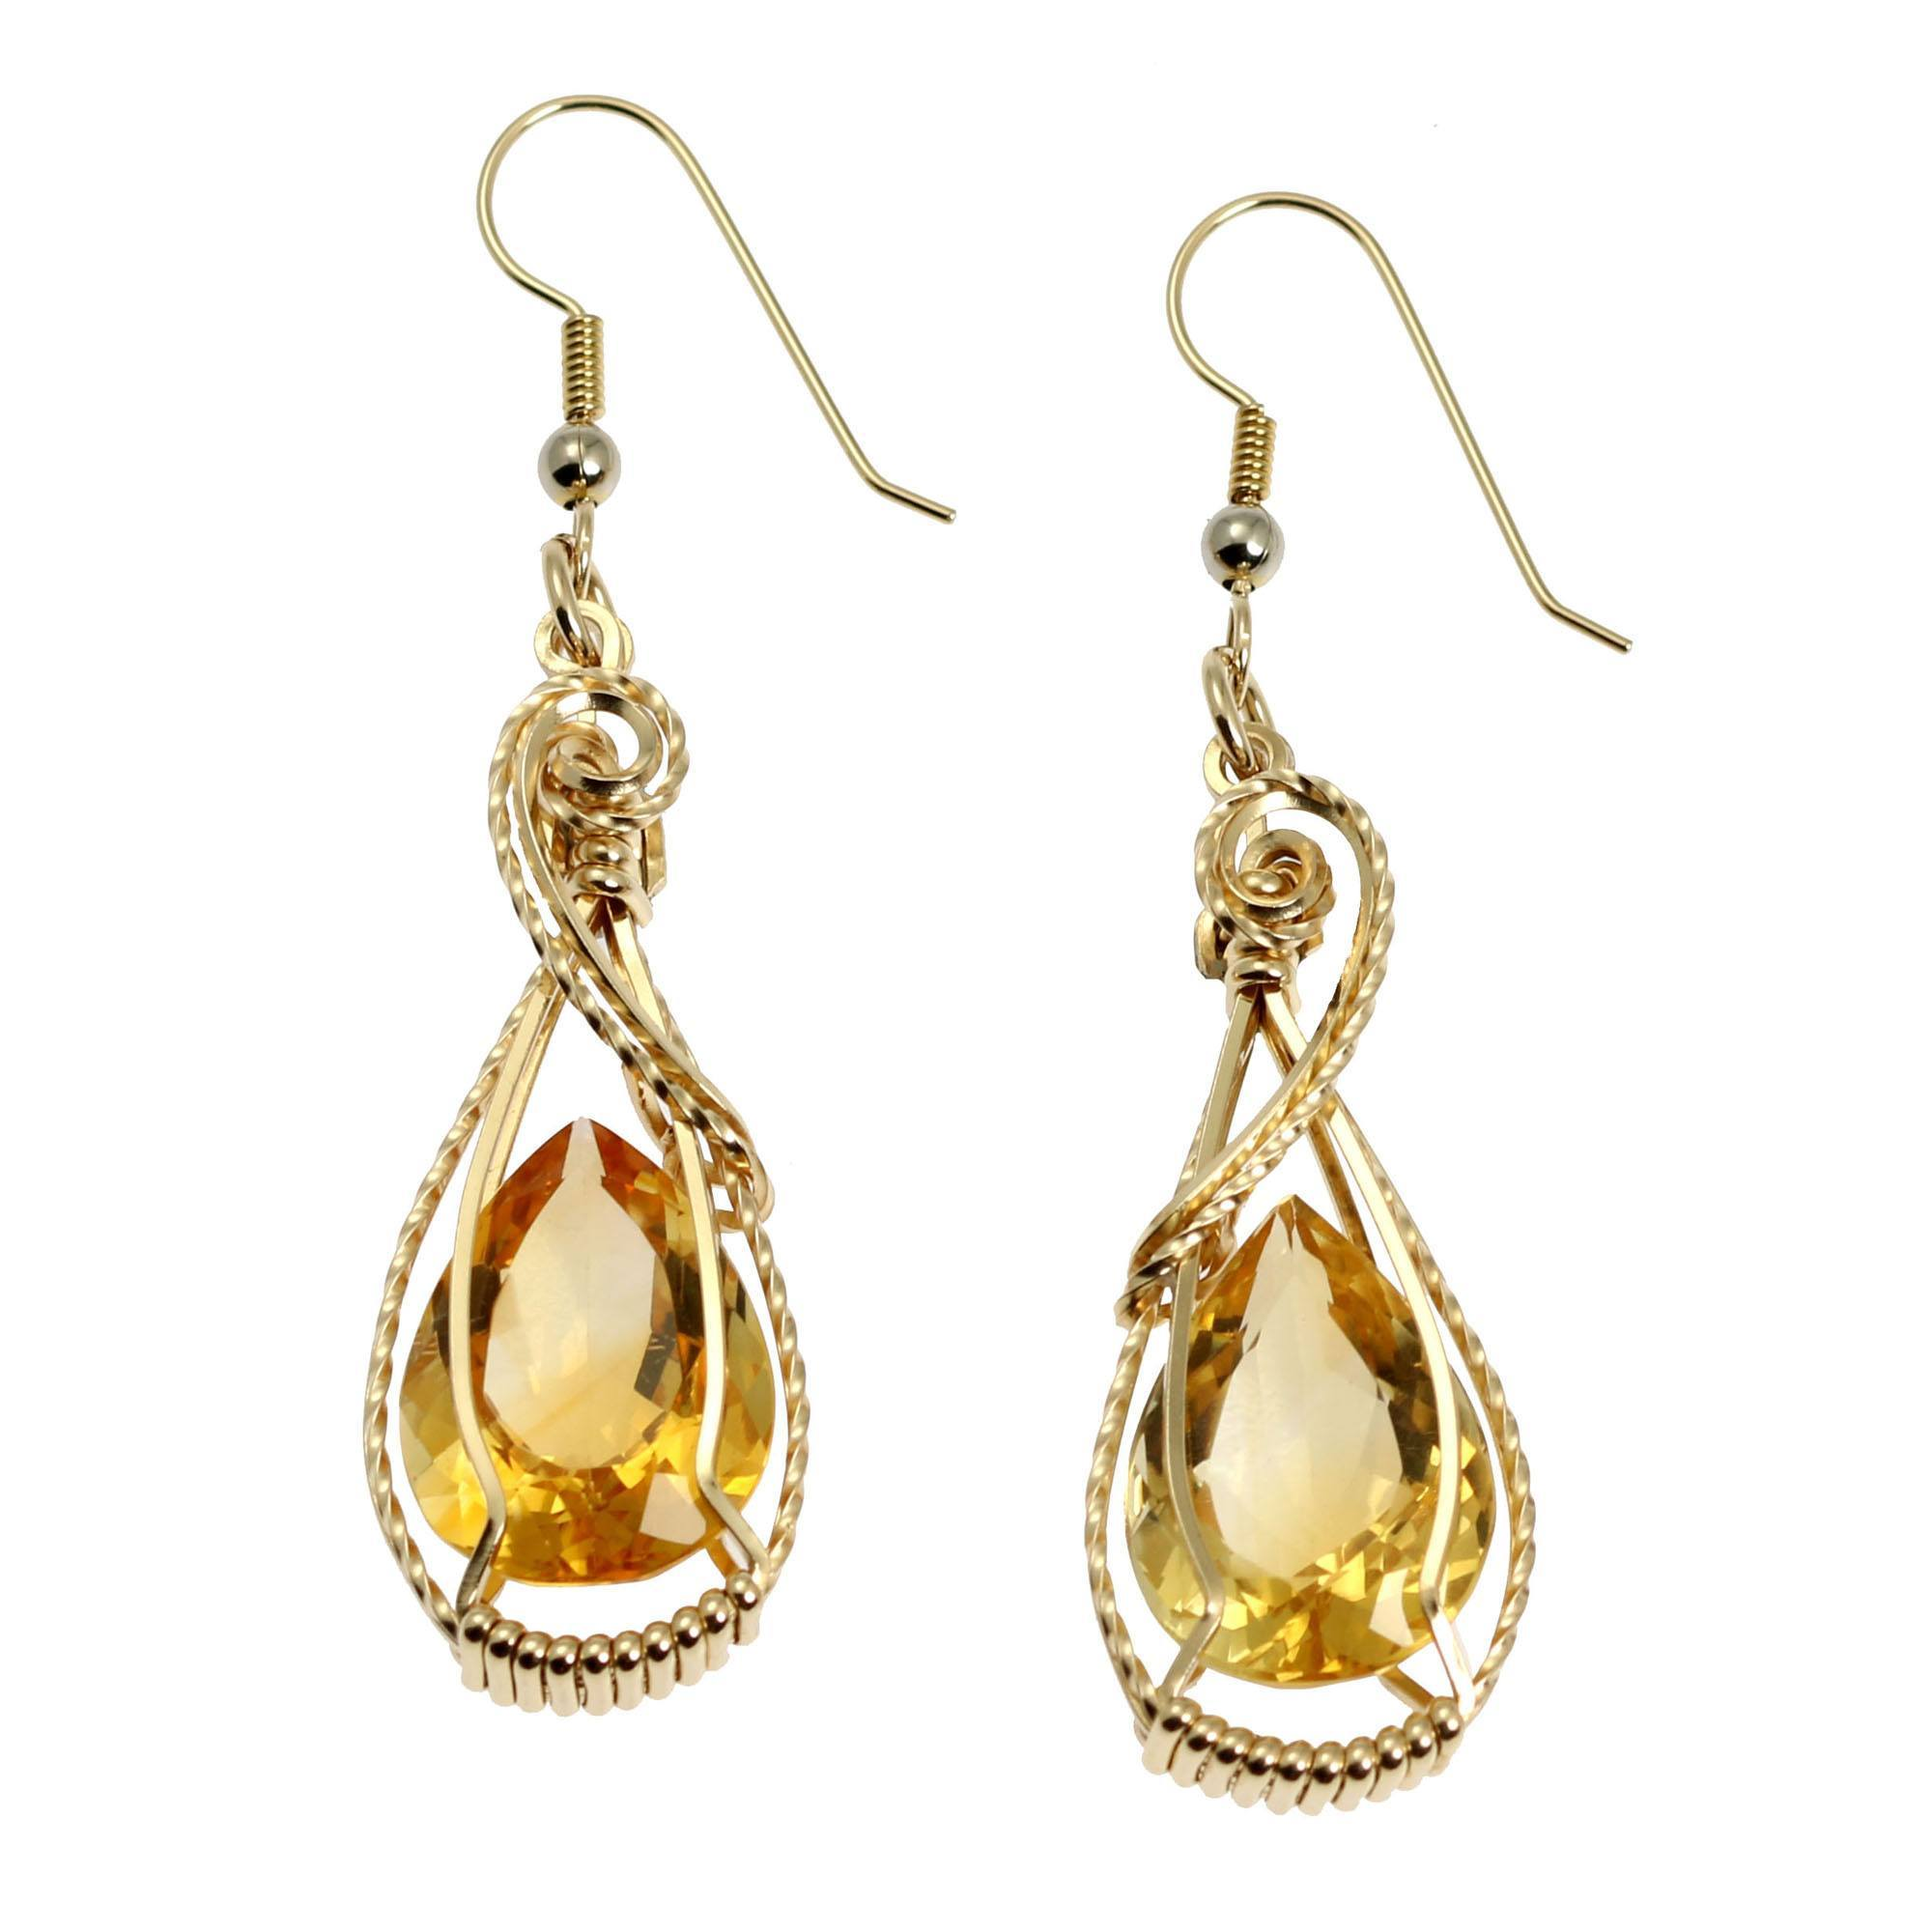 valltasy design the multi gold gemstone earrings hoop in filled felicity